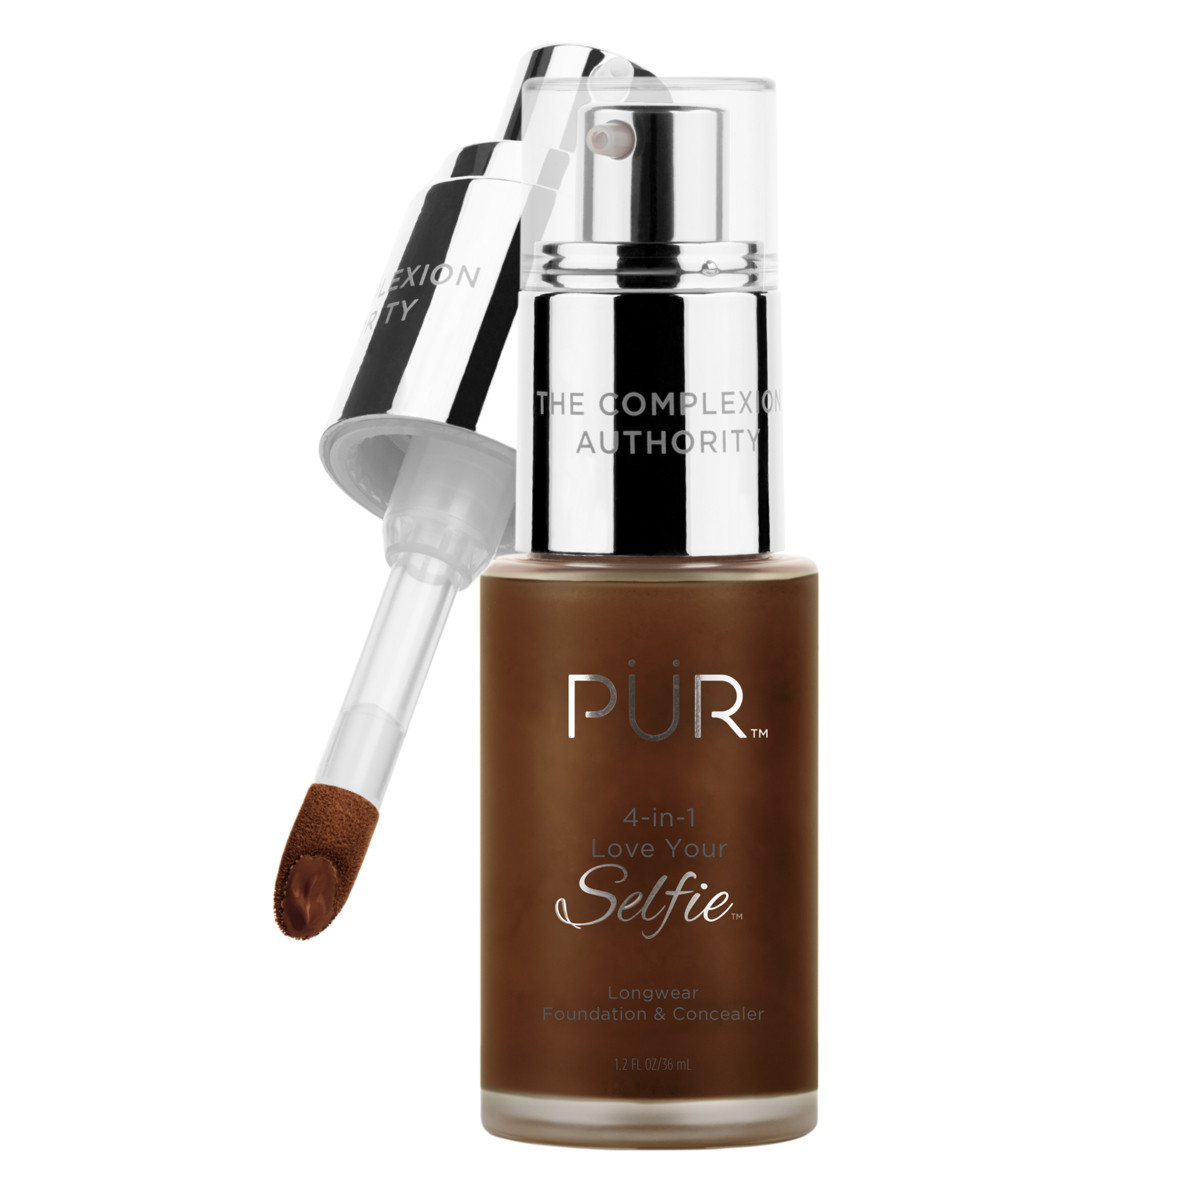 4-in-1 Love Your Selfie™ Longwear Foundation & Concealer in DPG6